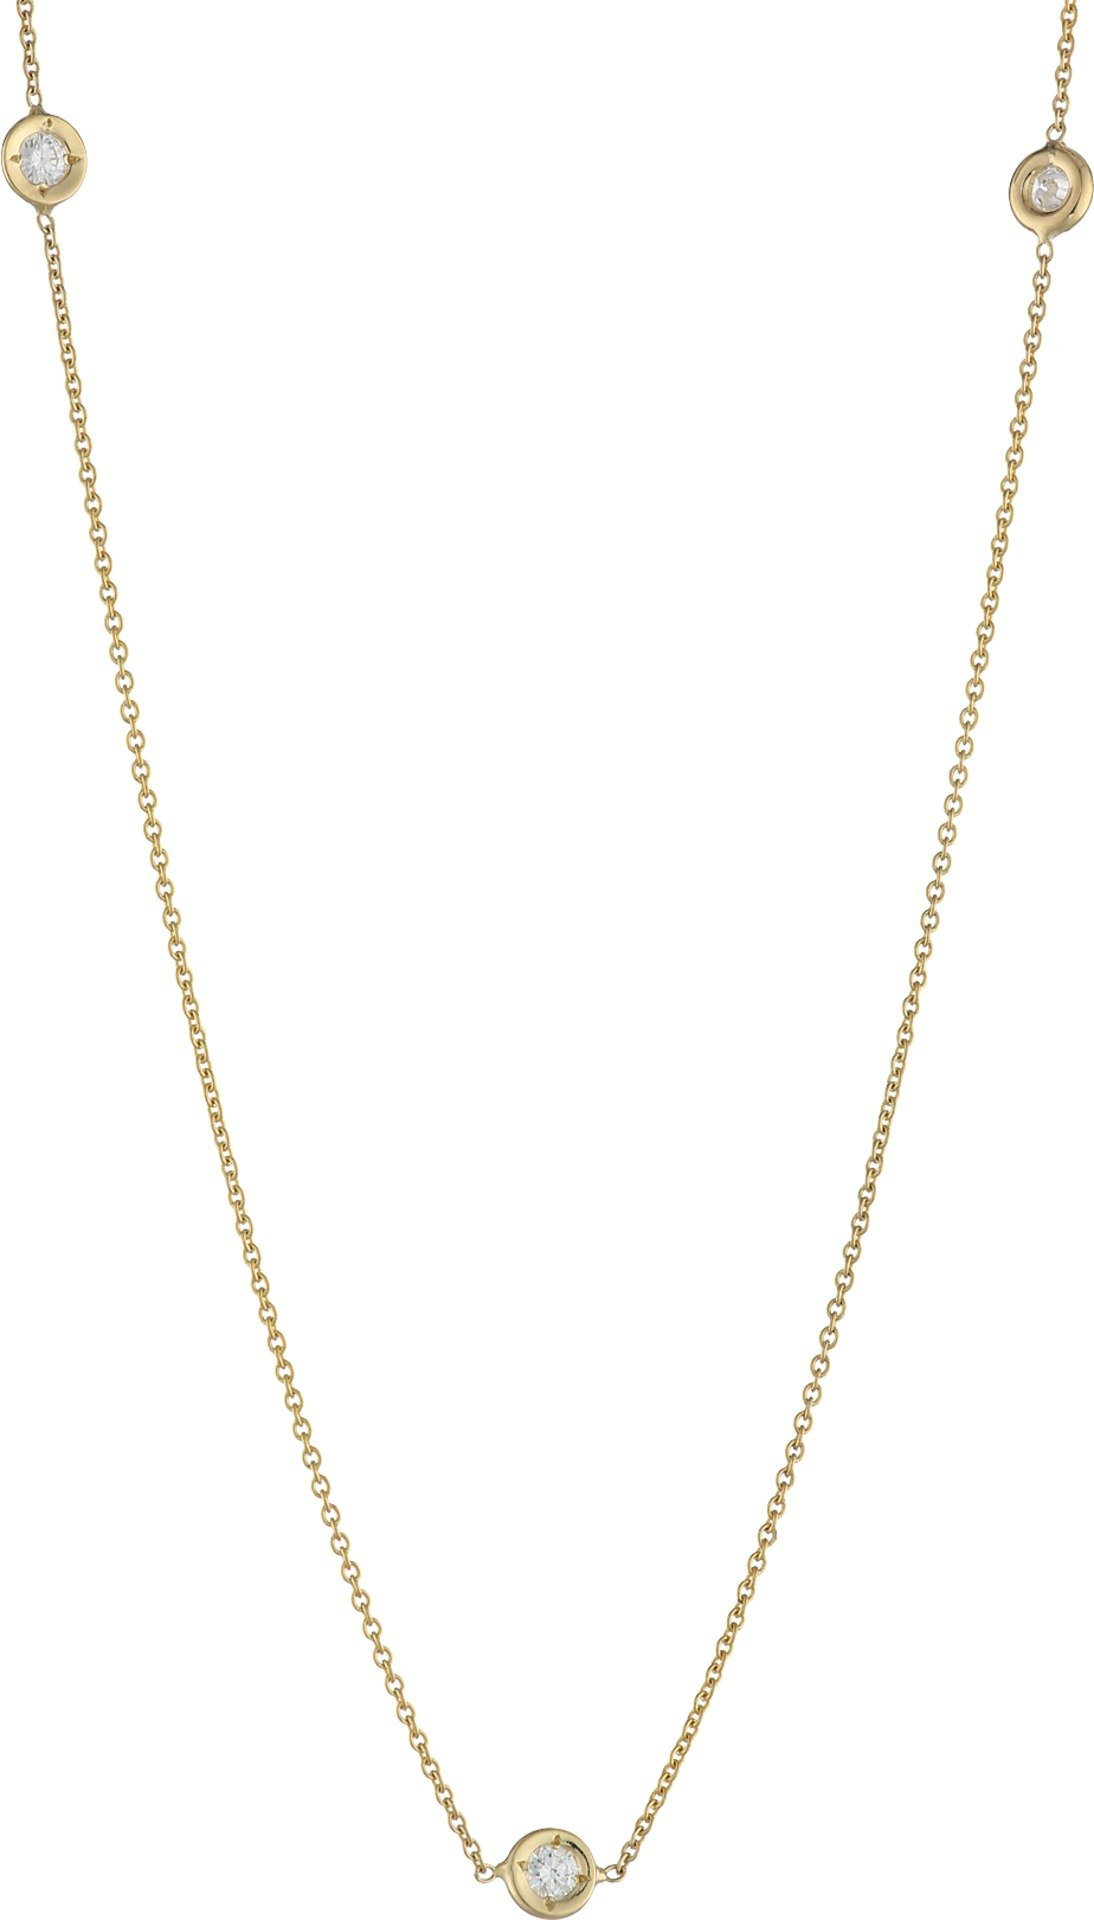 Roberto Coin Women's 5 Station Diamonds Necklace White One Size